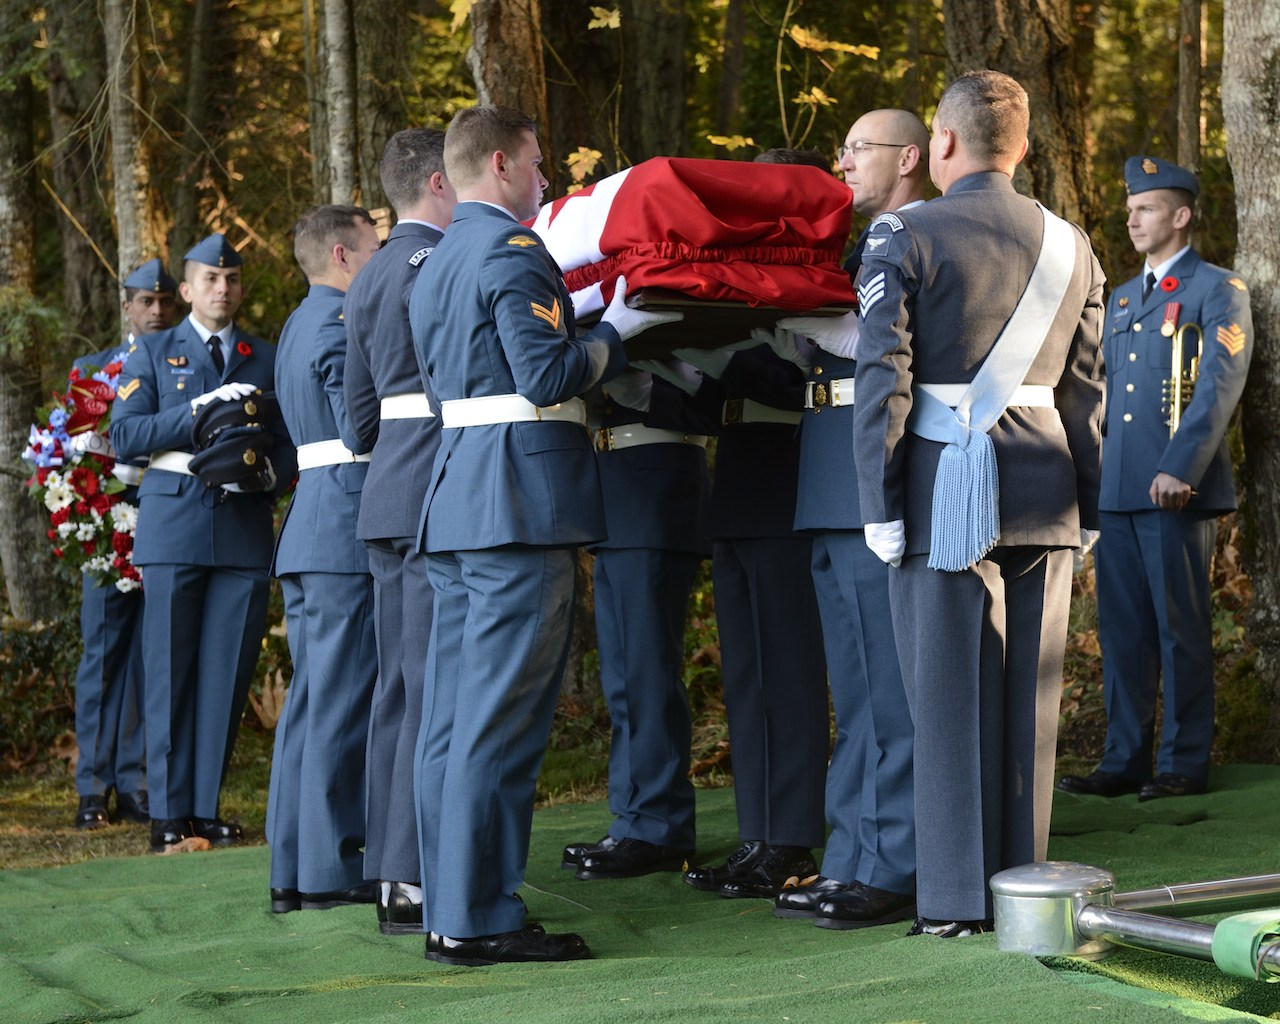 Pallbearers prepare to lower the casket during the memorial service for the air crew from Avro Anson flight L7056 at Royal Oak Buriral Park in Victoria, BC on 10 November, 2014. Photo: Corporal Malcolm Byers, MARPAC Imaging Services